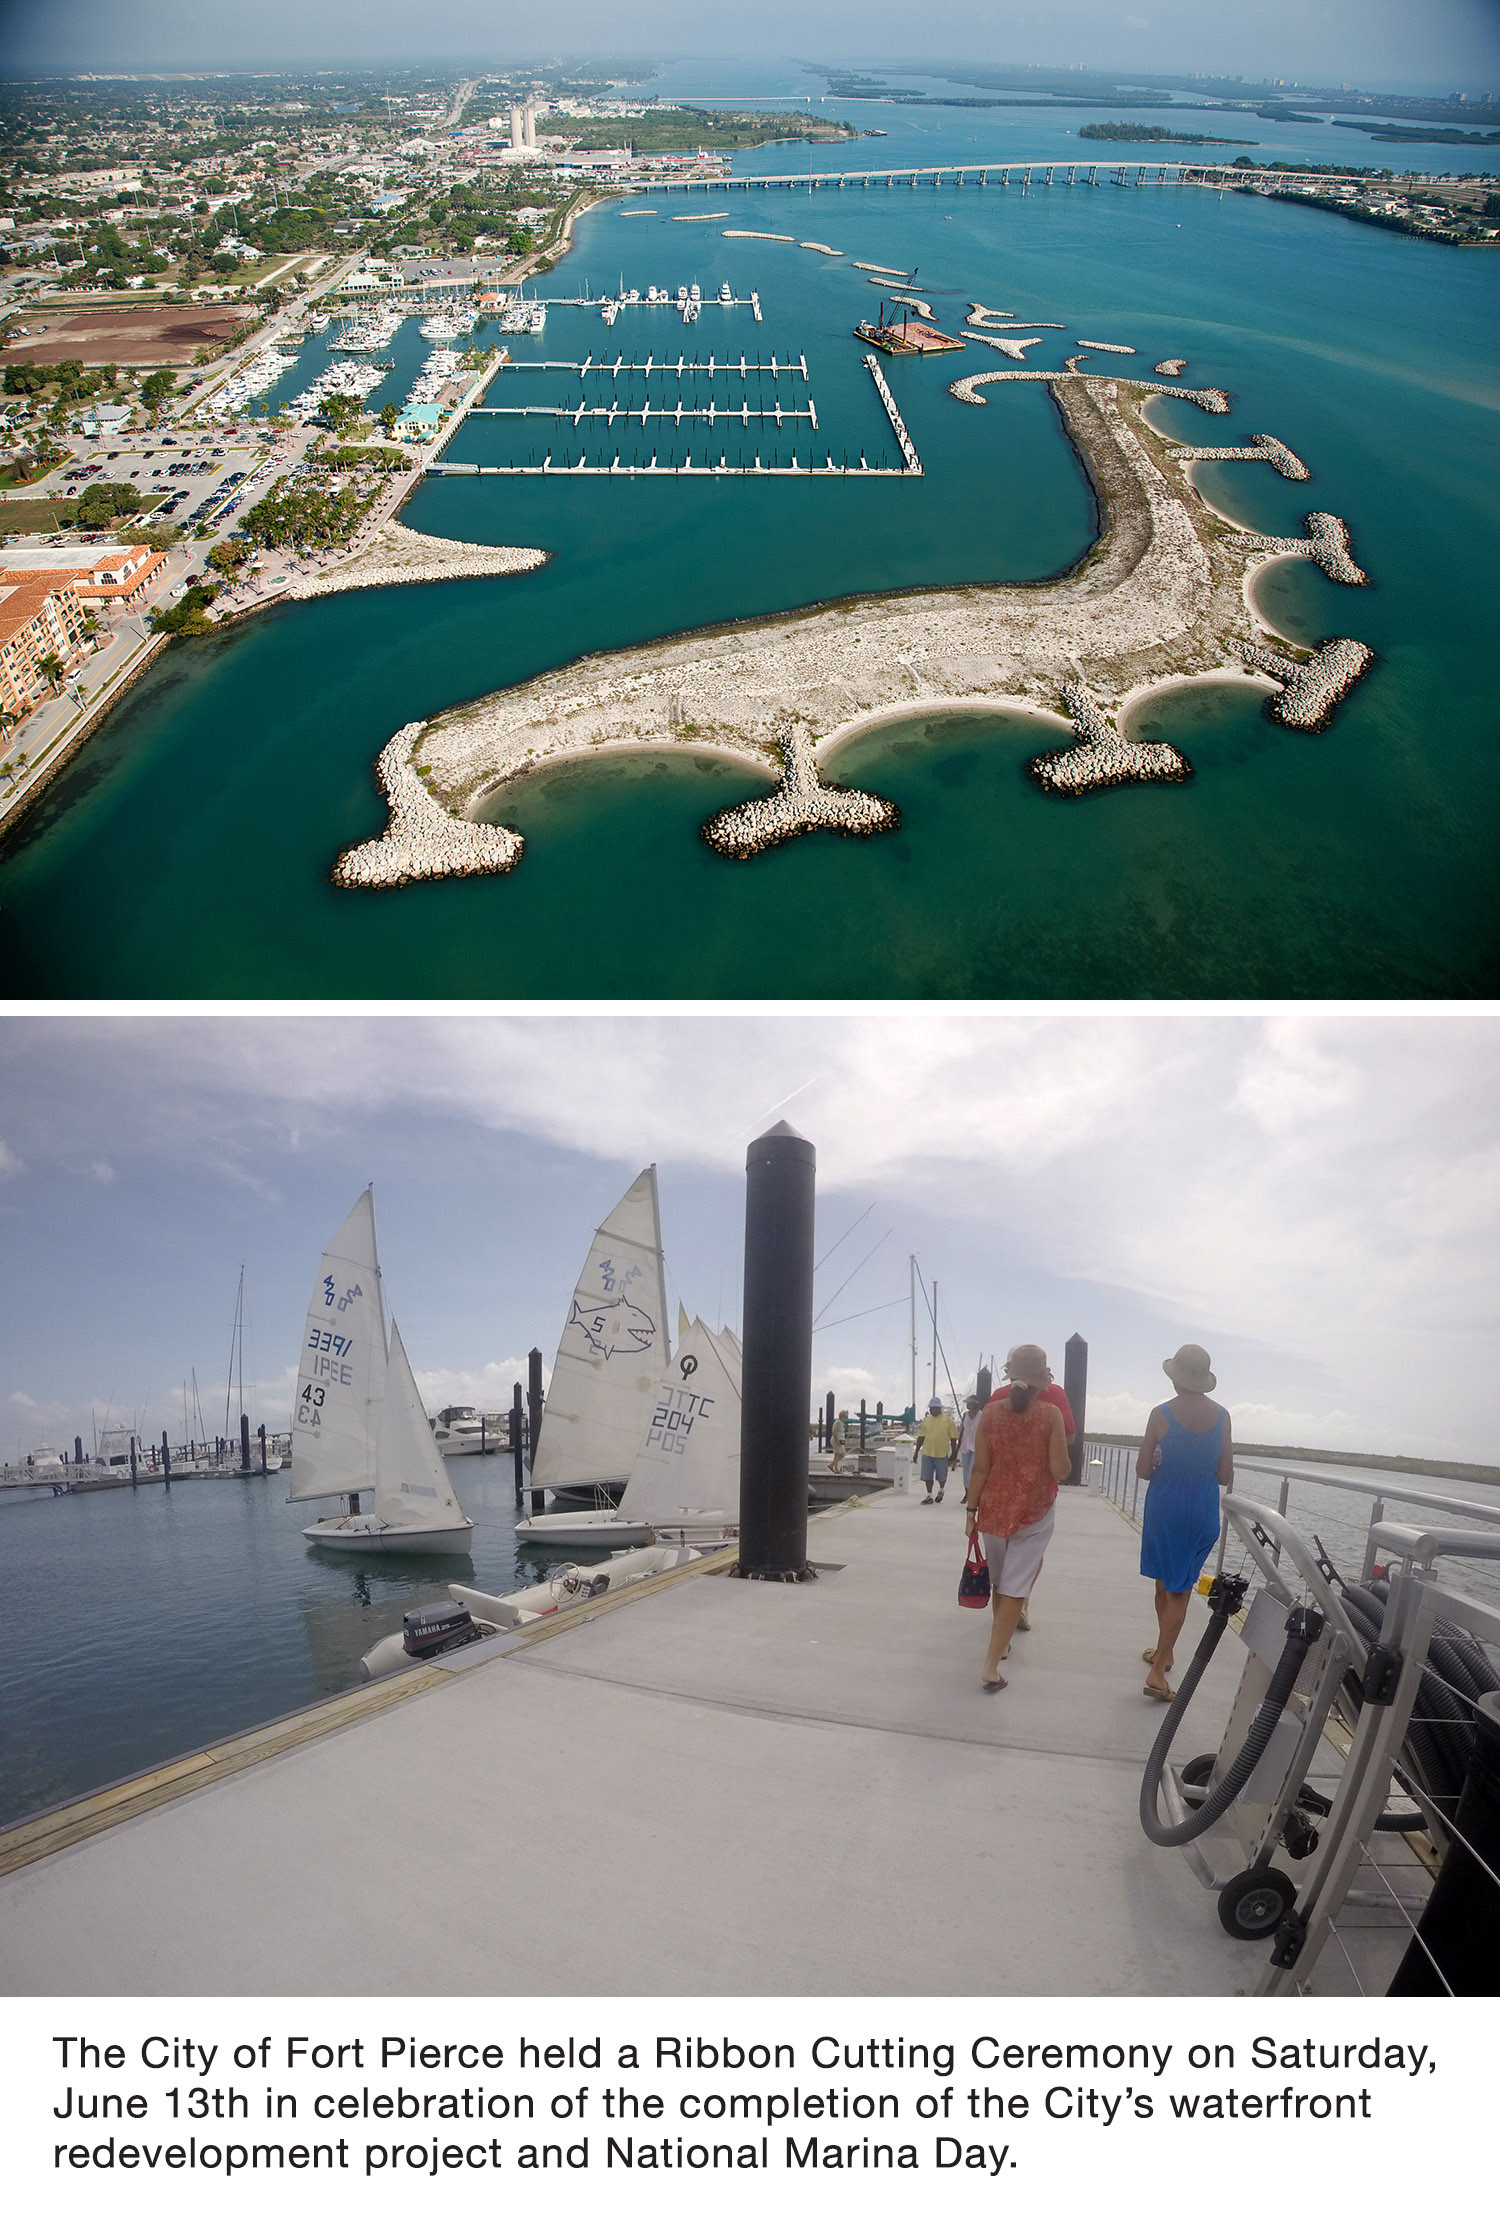 Bellingham Marine constructs new floating docks for the City of Fort Pierce